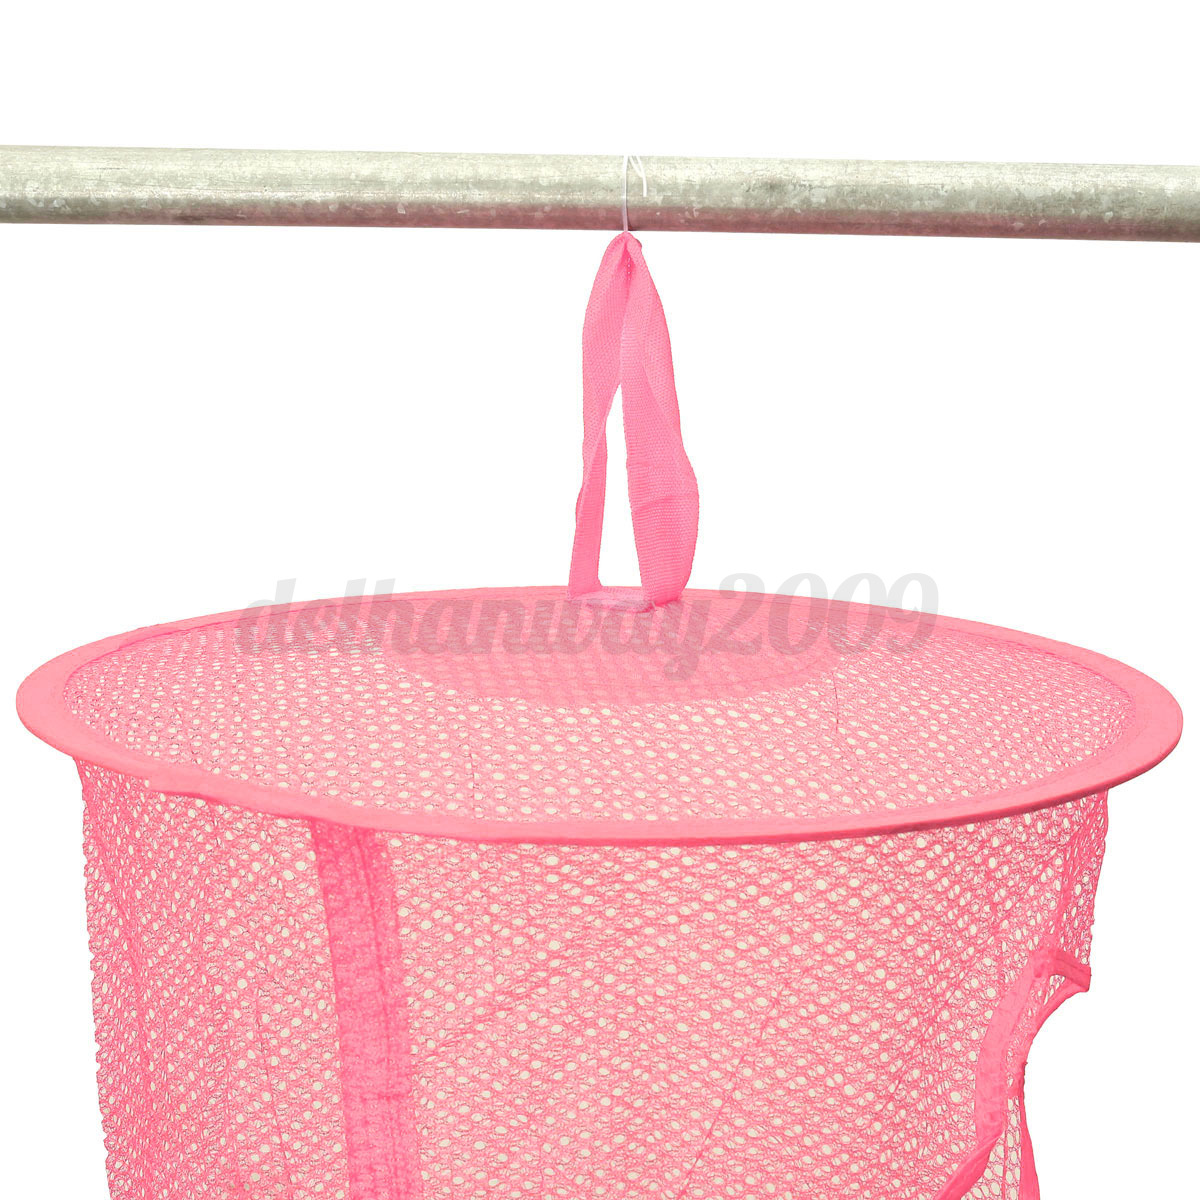 Toy storage hanging toy storage net for Hanging toy net